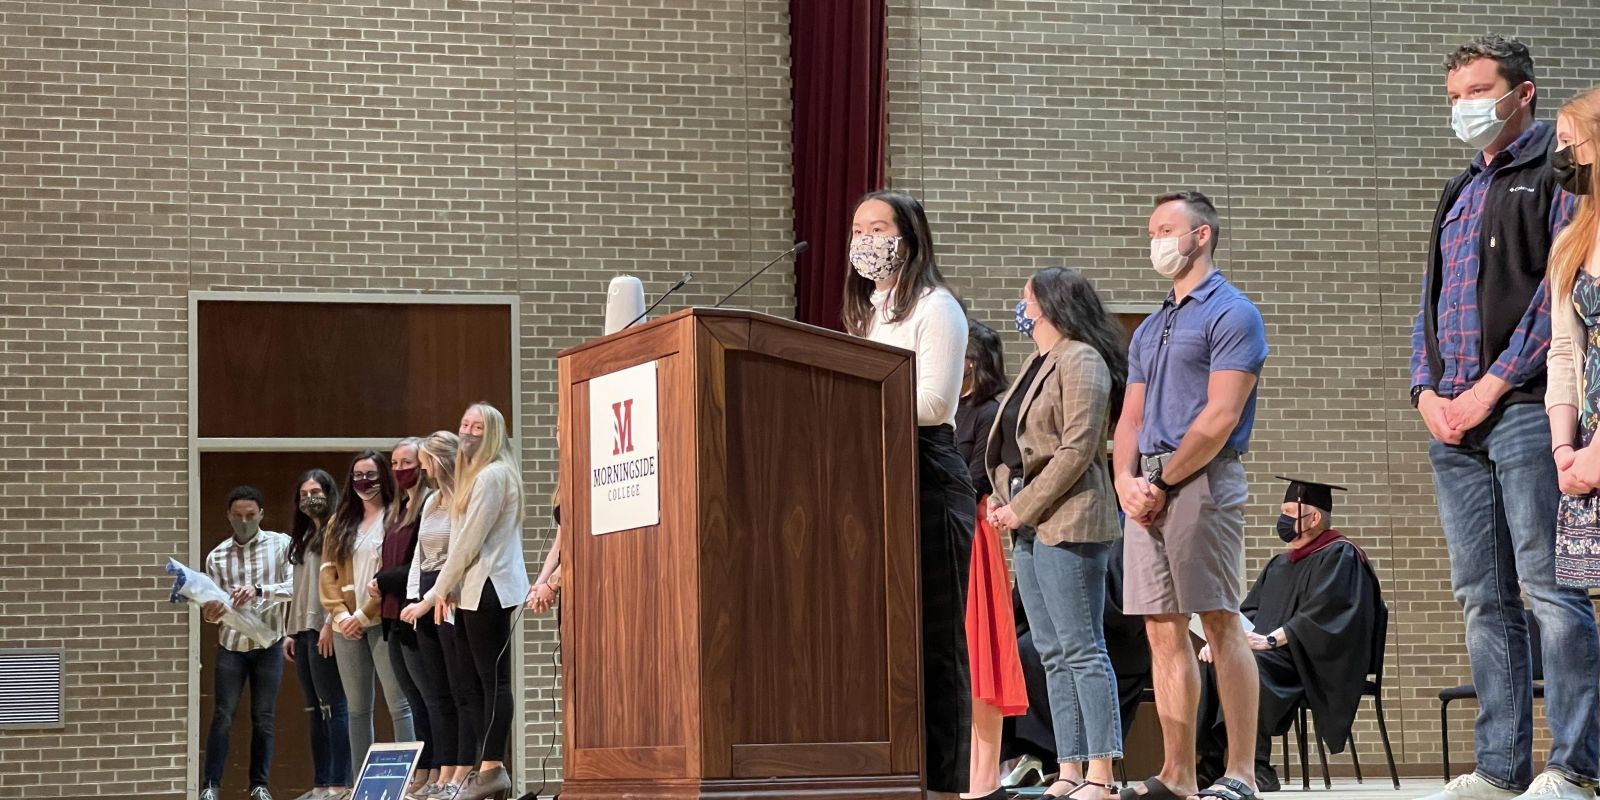 Omicron Delta Kappa (ODK) Honors Convocation people on stage